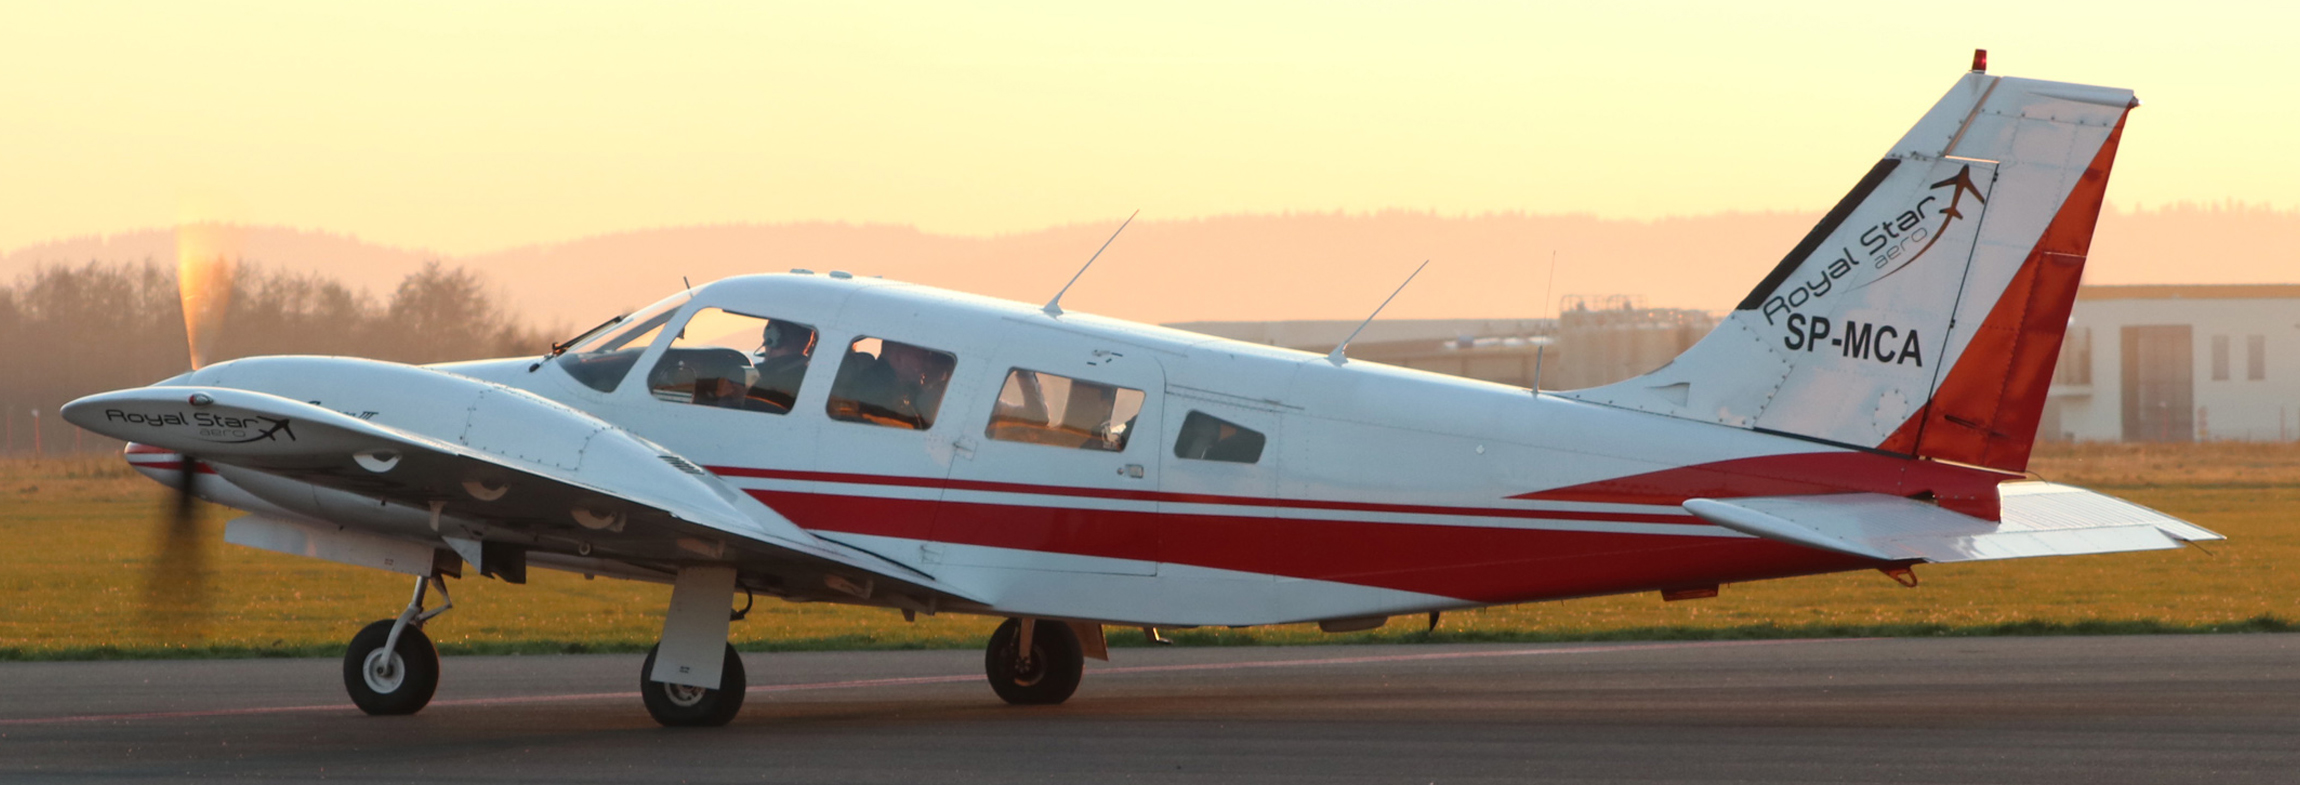 PIPER SENECA SP-MCA